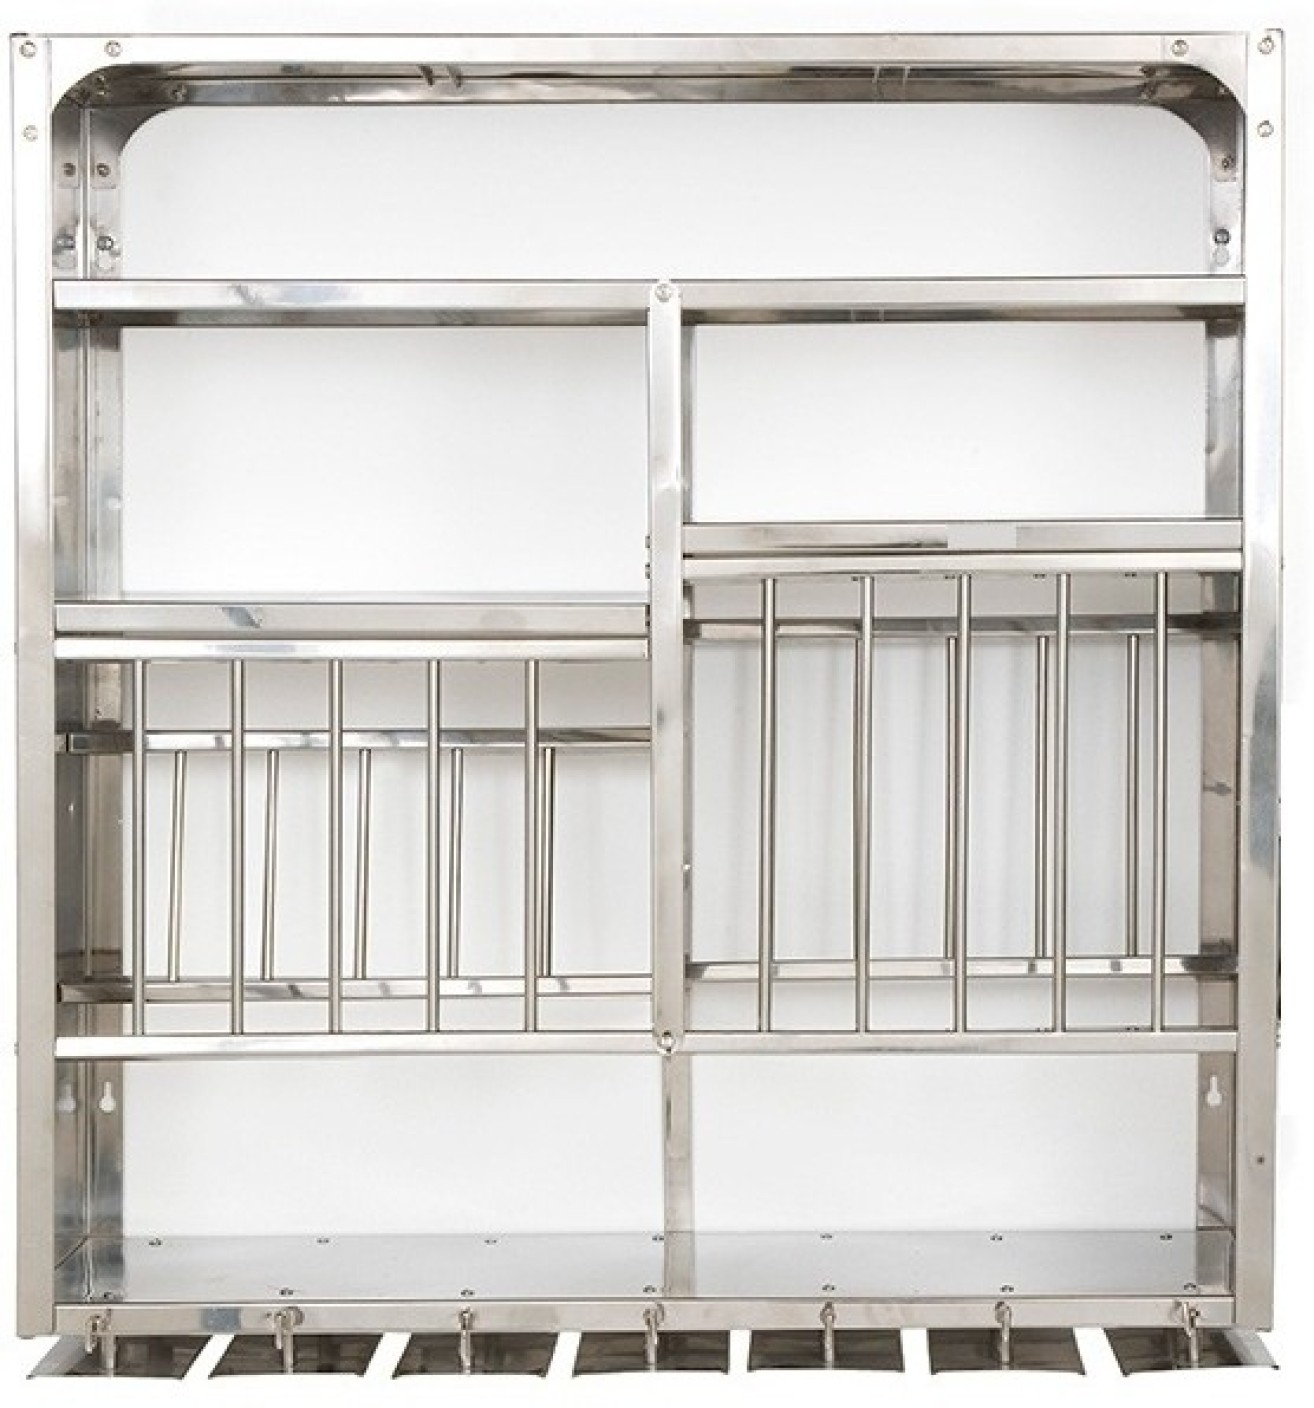 Kitchen Shelves And Racks Online: Bharat 30 X 30 Stainless Steel Kitchen Rack Price In India